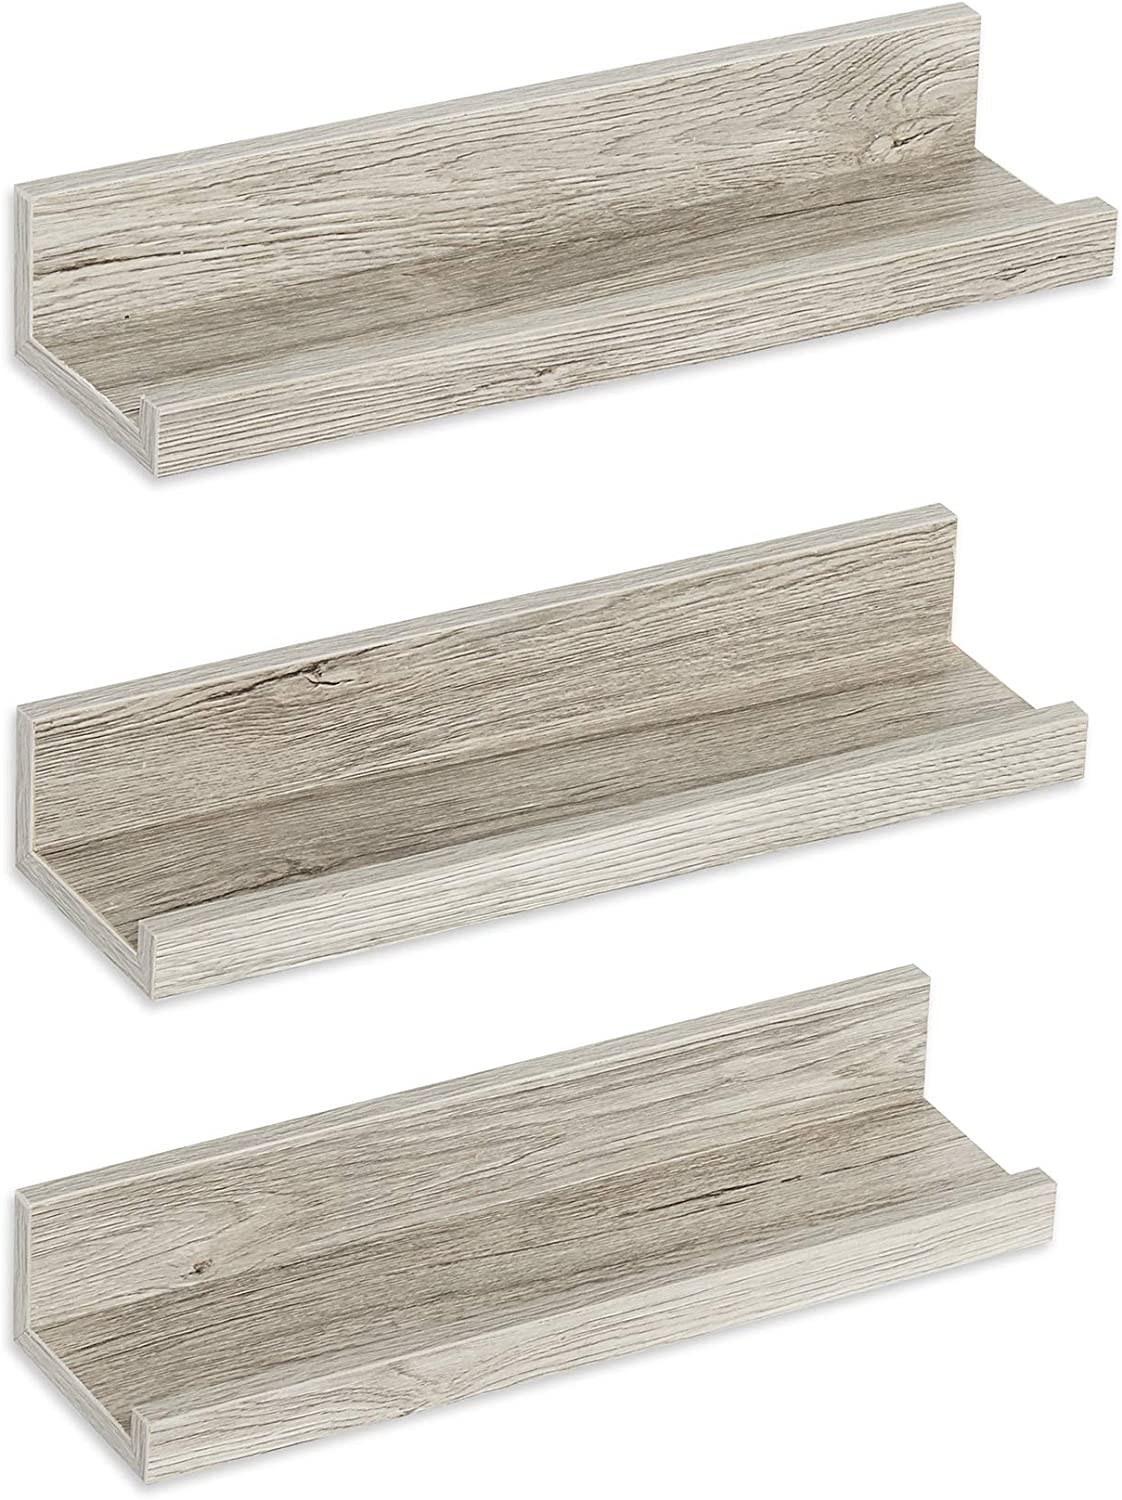 Americanflat Driftwood Floating Shelves with Lip Set of 3 - Composite Wood Wall Mounted Display Ledges for Bedroom, Living Room, Bathroom, Kitchen, and Office